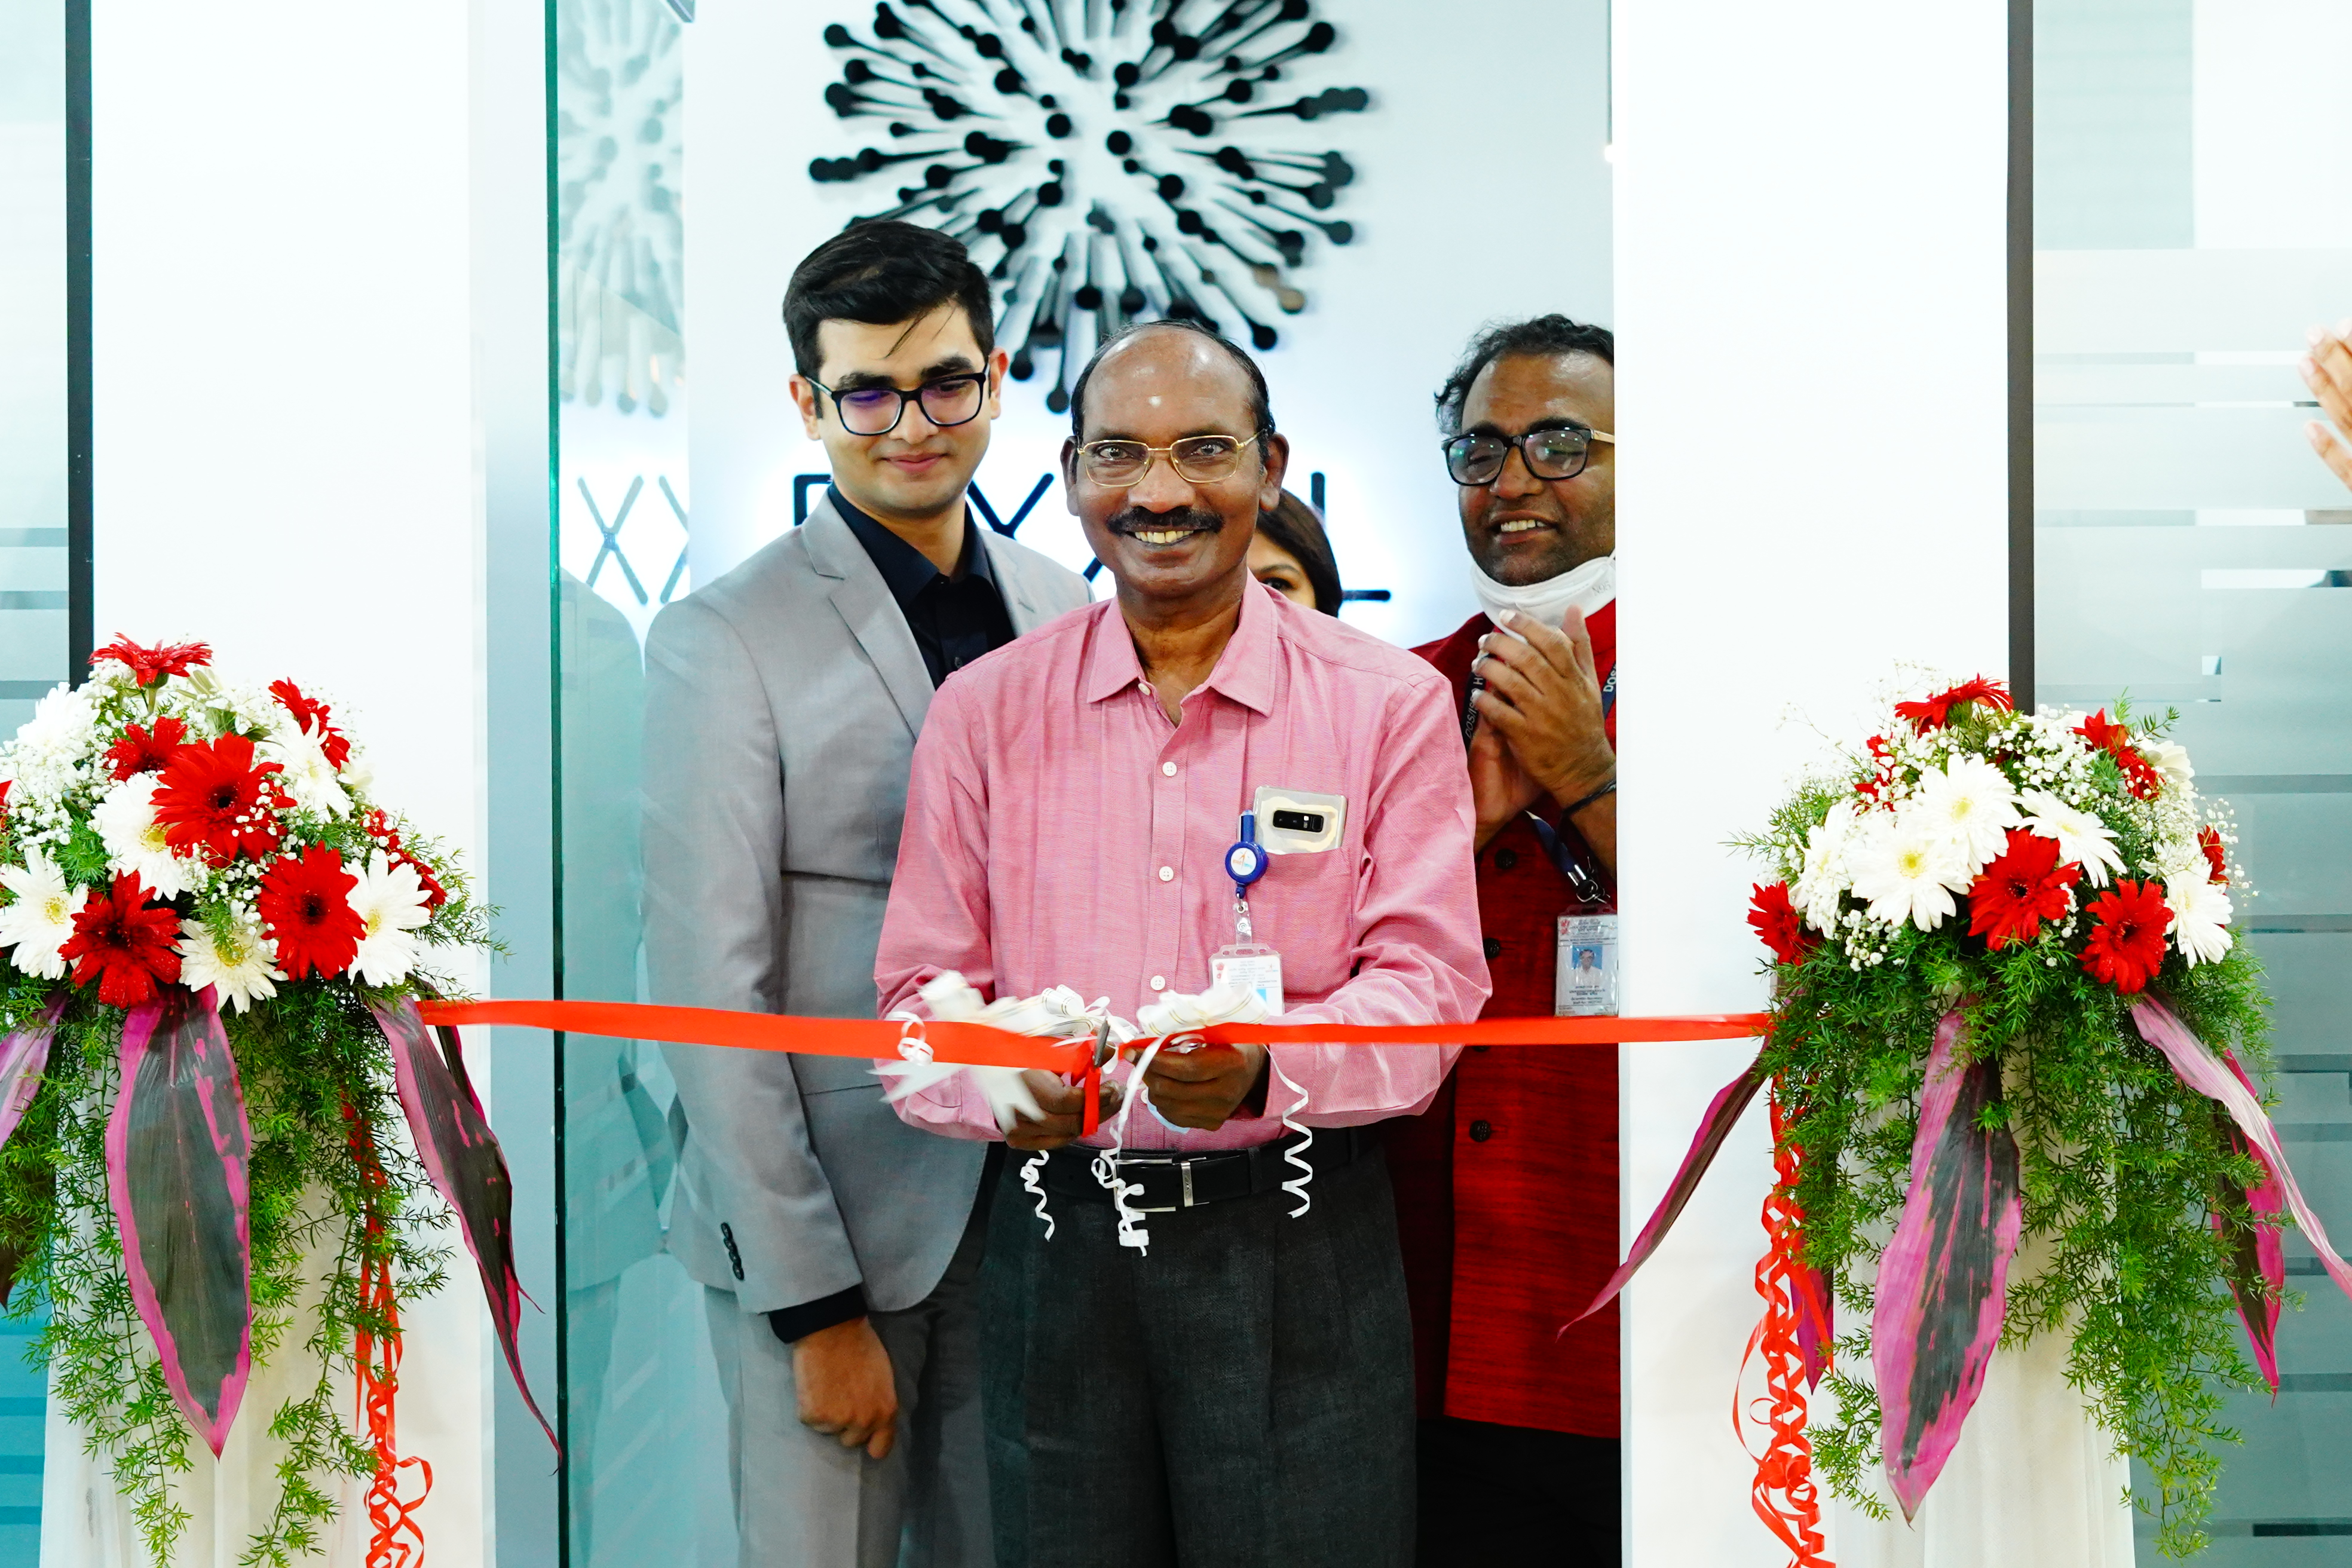 Inauguration of M/s Pixxel's office at Bangalore held today in the presence of Dr. K. Sivan, Chairman, ISRO/Secretary, DOS as Chief guest